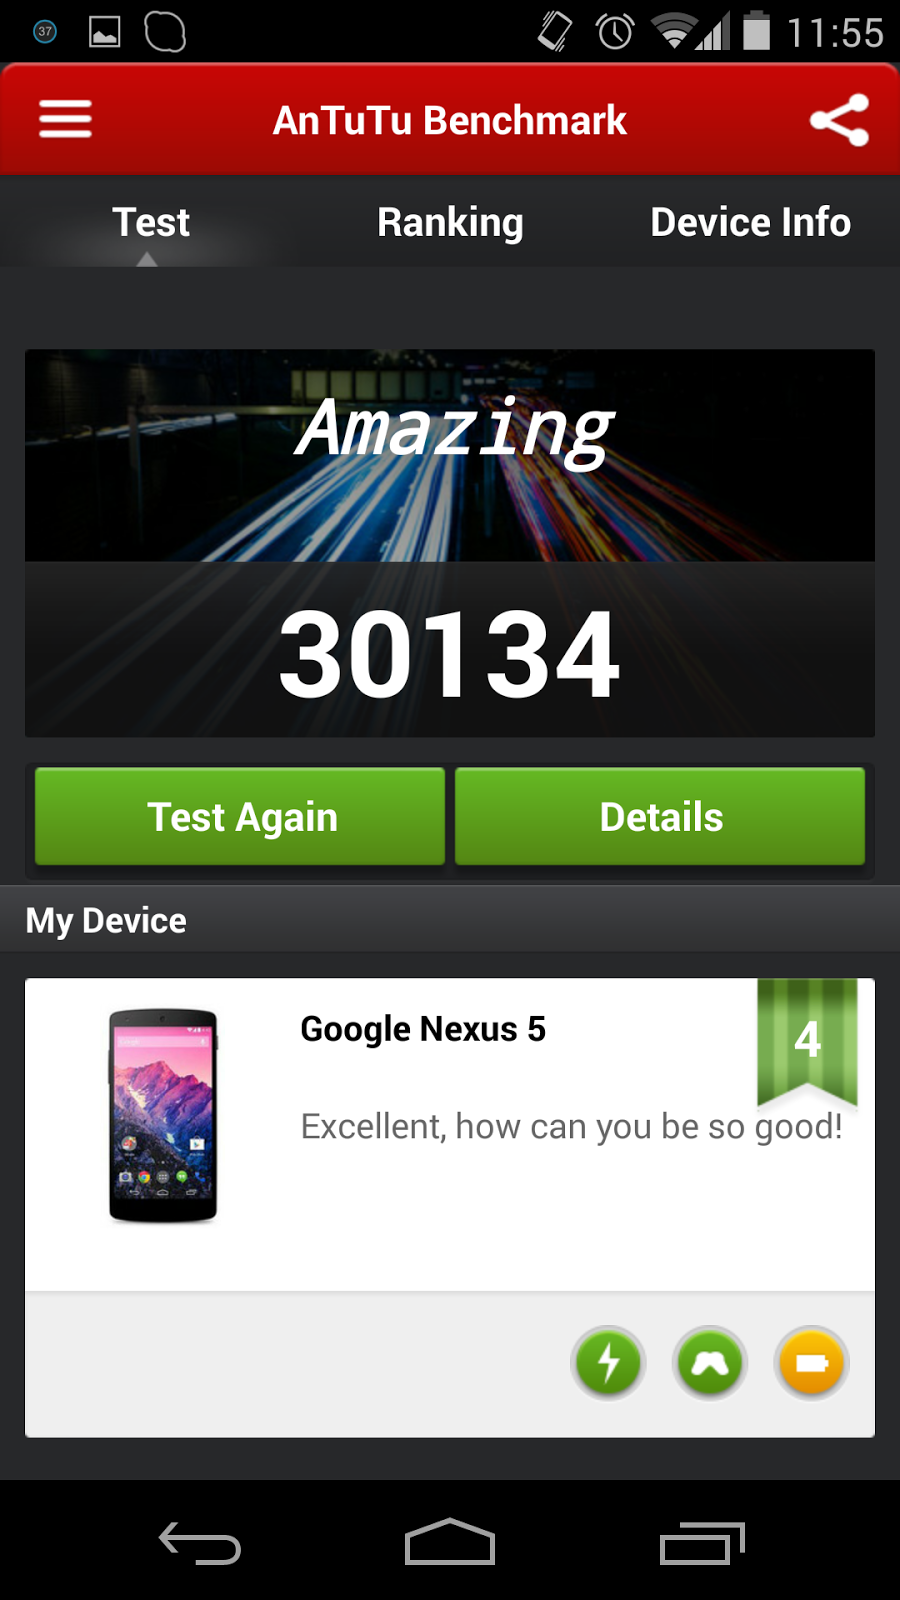 Google+LG+Nexus+5+Android+KitKat+Review+Handson+Detailed+Benchmark++%25281%2529.png